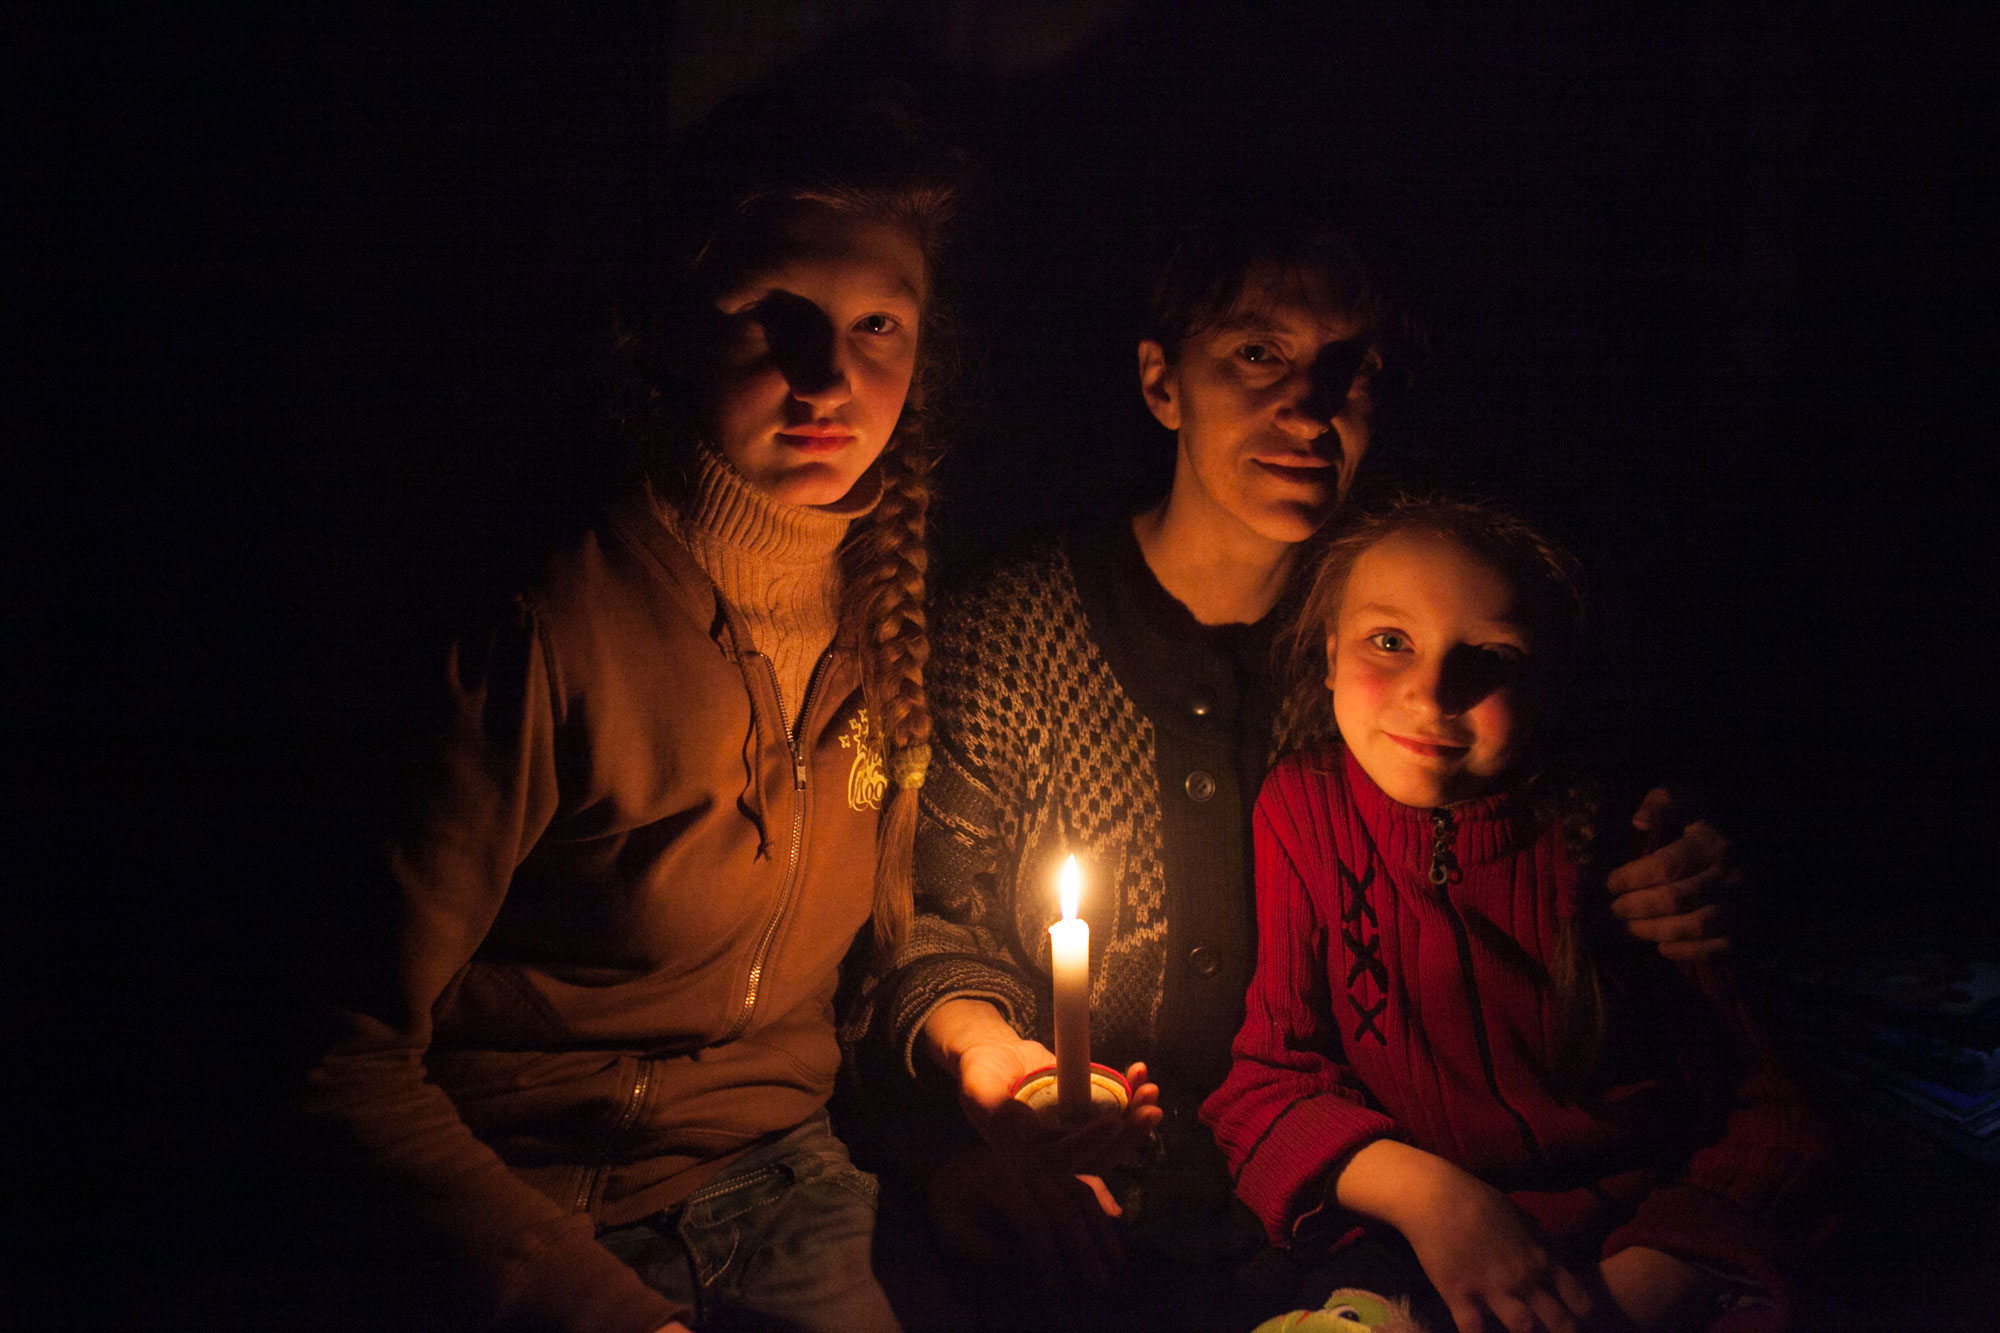 In Donetsk, eastern Ukraine, a woman and her daughters sit in a candlelit bomb shelter on the outskirts of the city of Debaltsevo. UNICEF/UNI179968/Filippov